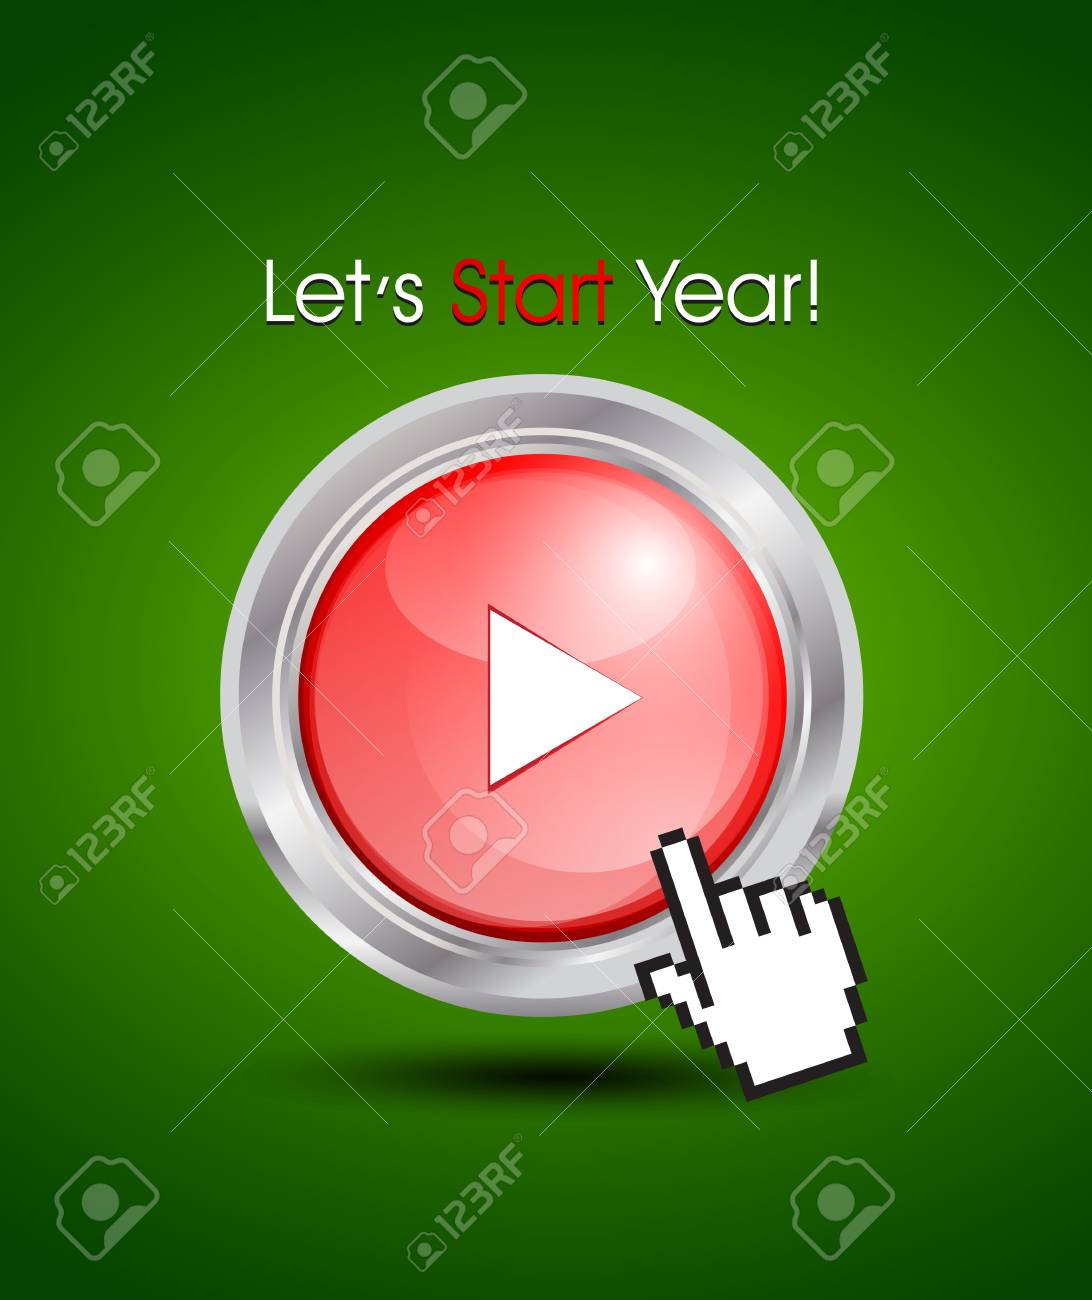 starting a new year concept Stock Vector - 15821033